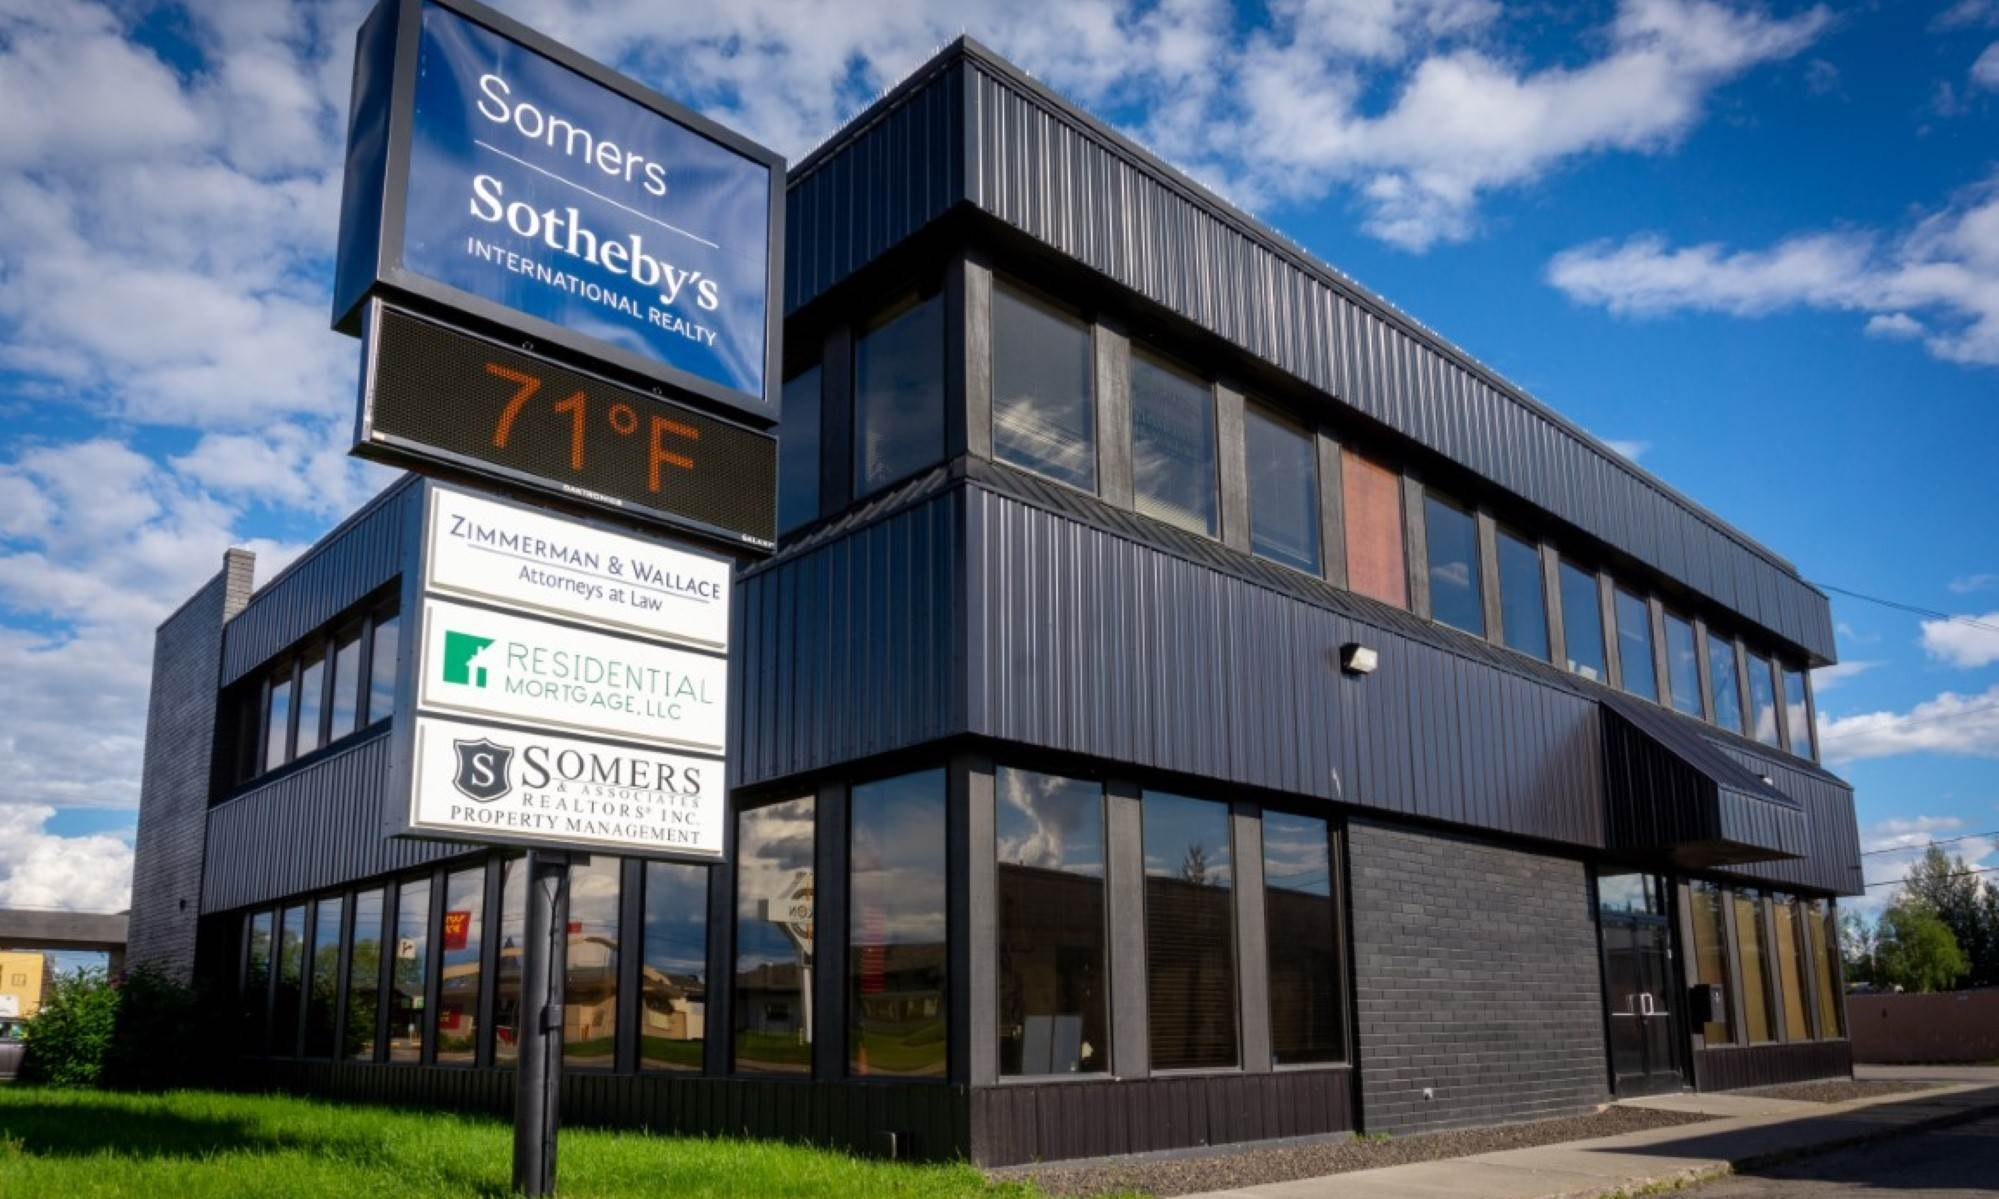 Somers Sotheby's International Realty- Fairbanks